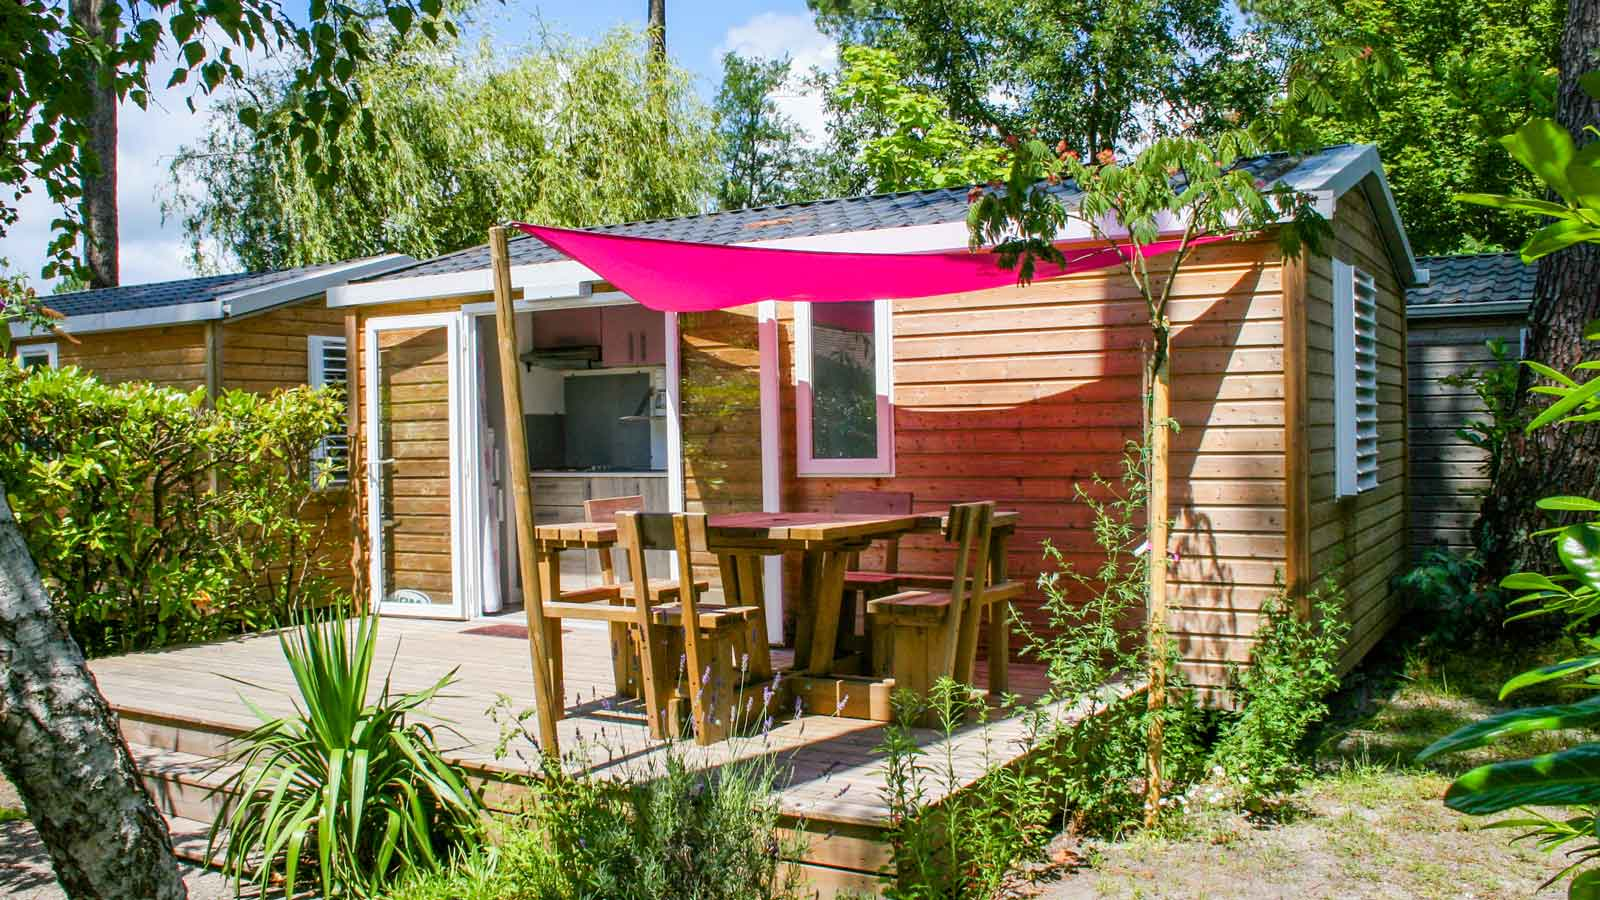 location mobil-home bassin d'Arcachon